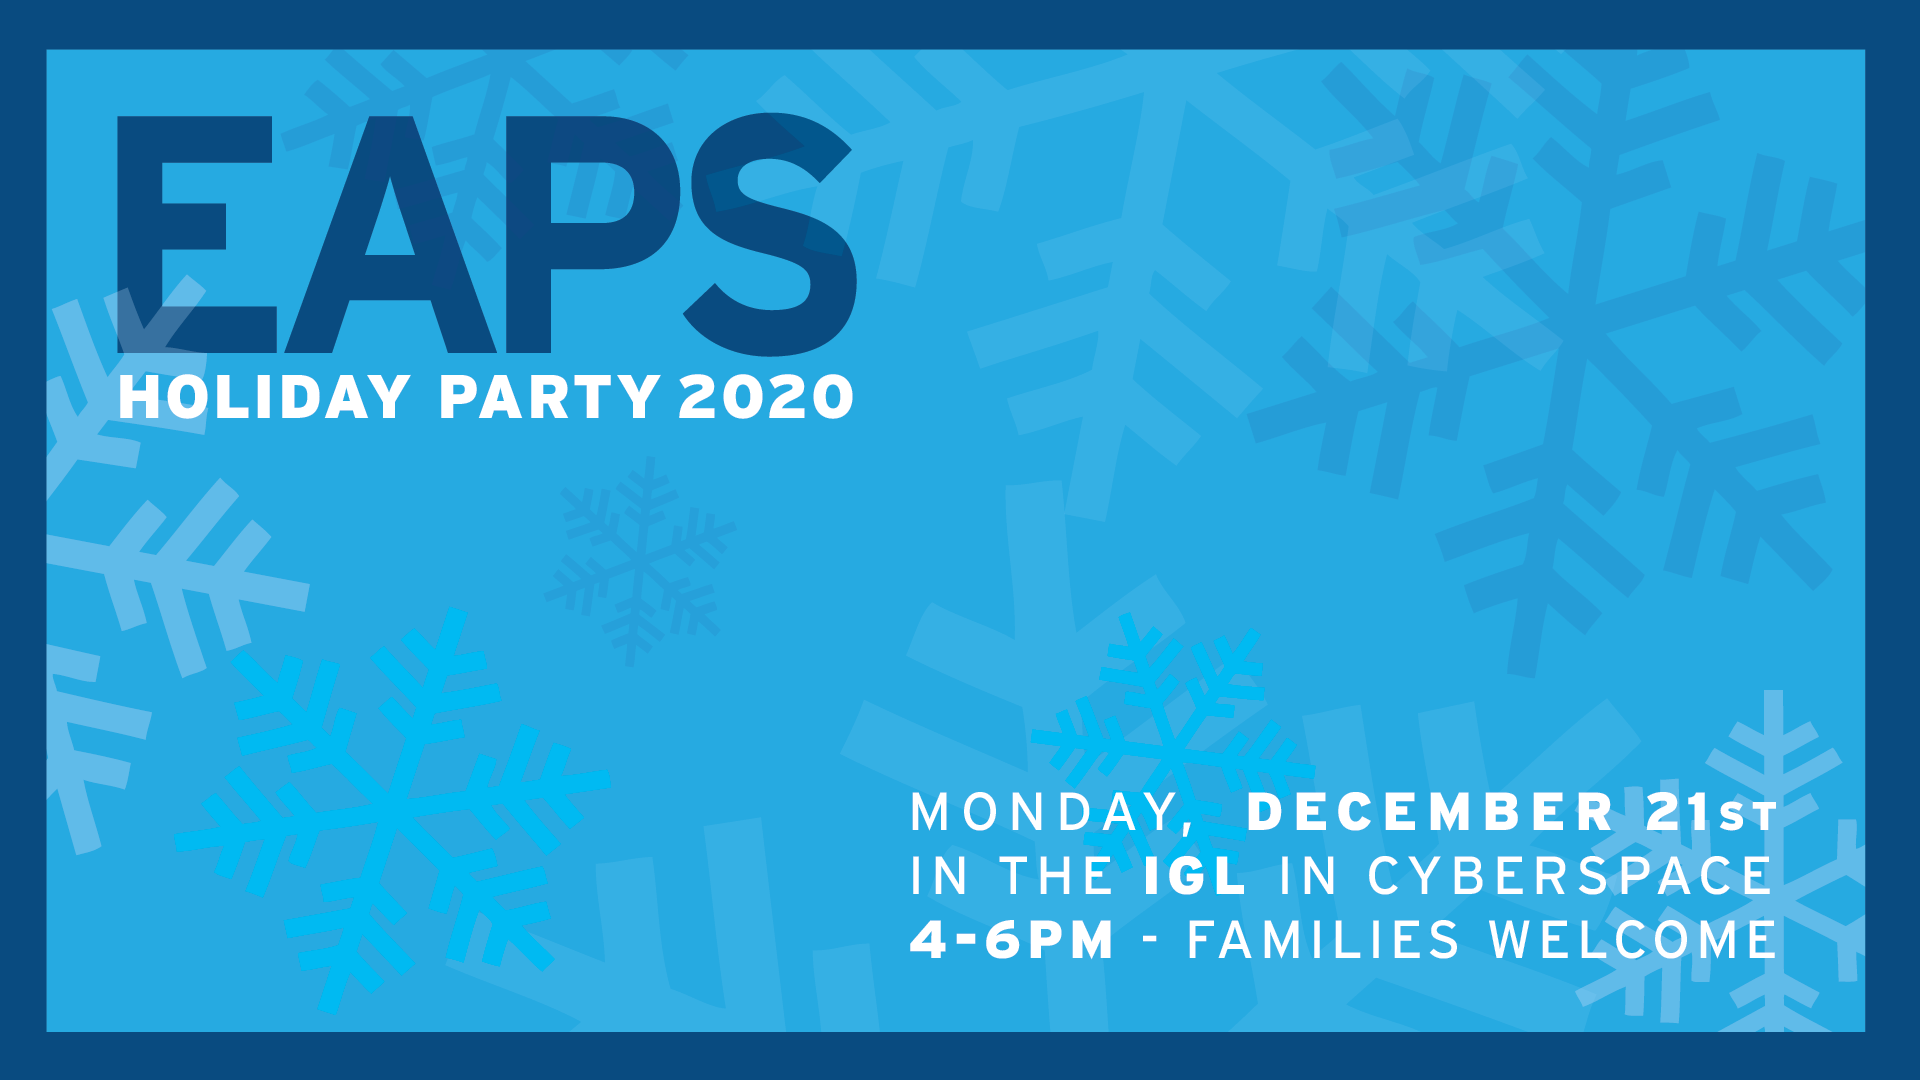 EAPS Holiday Party 2020 4pm to 6pm